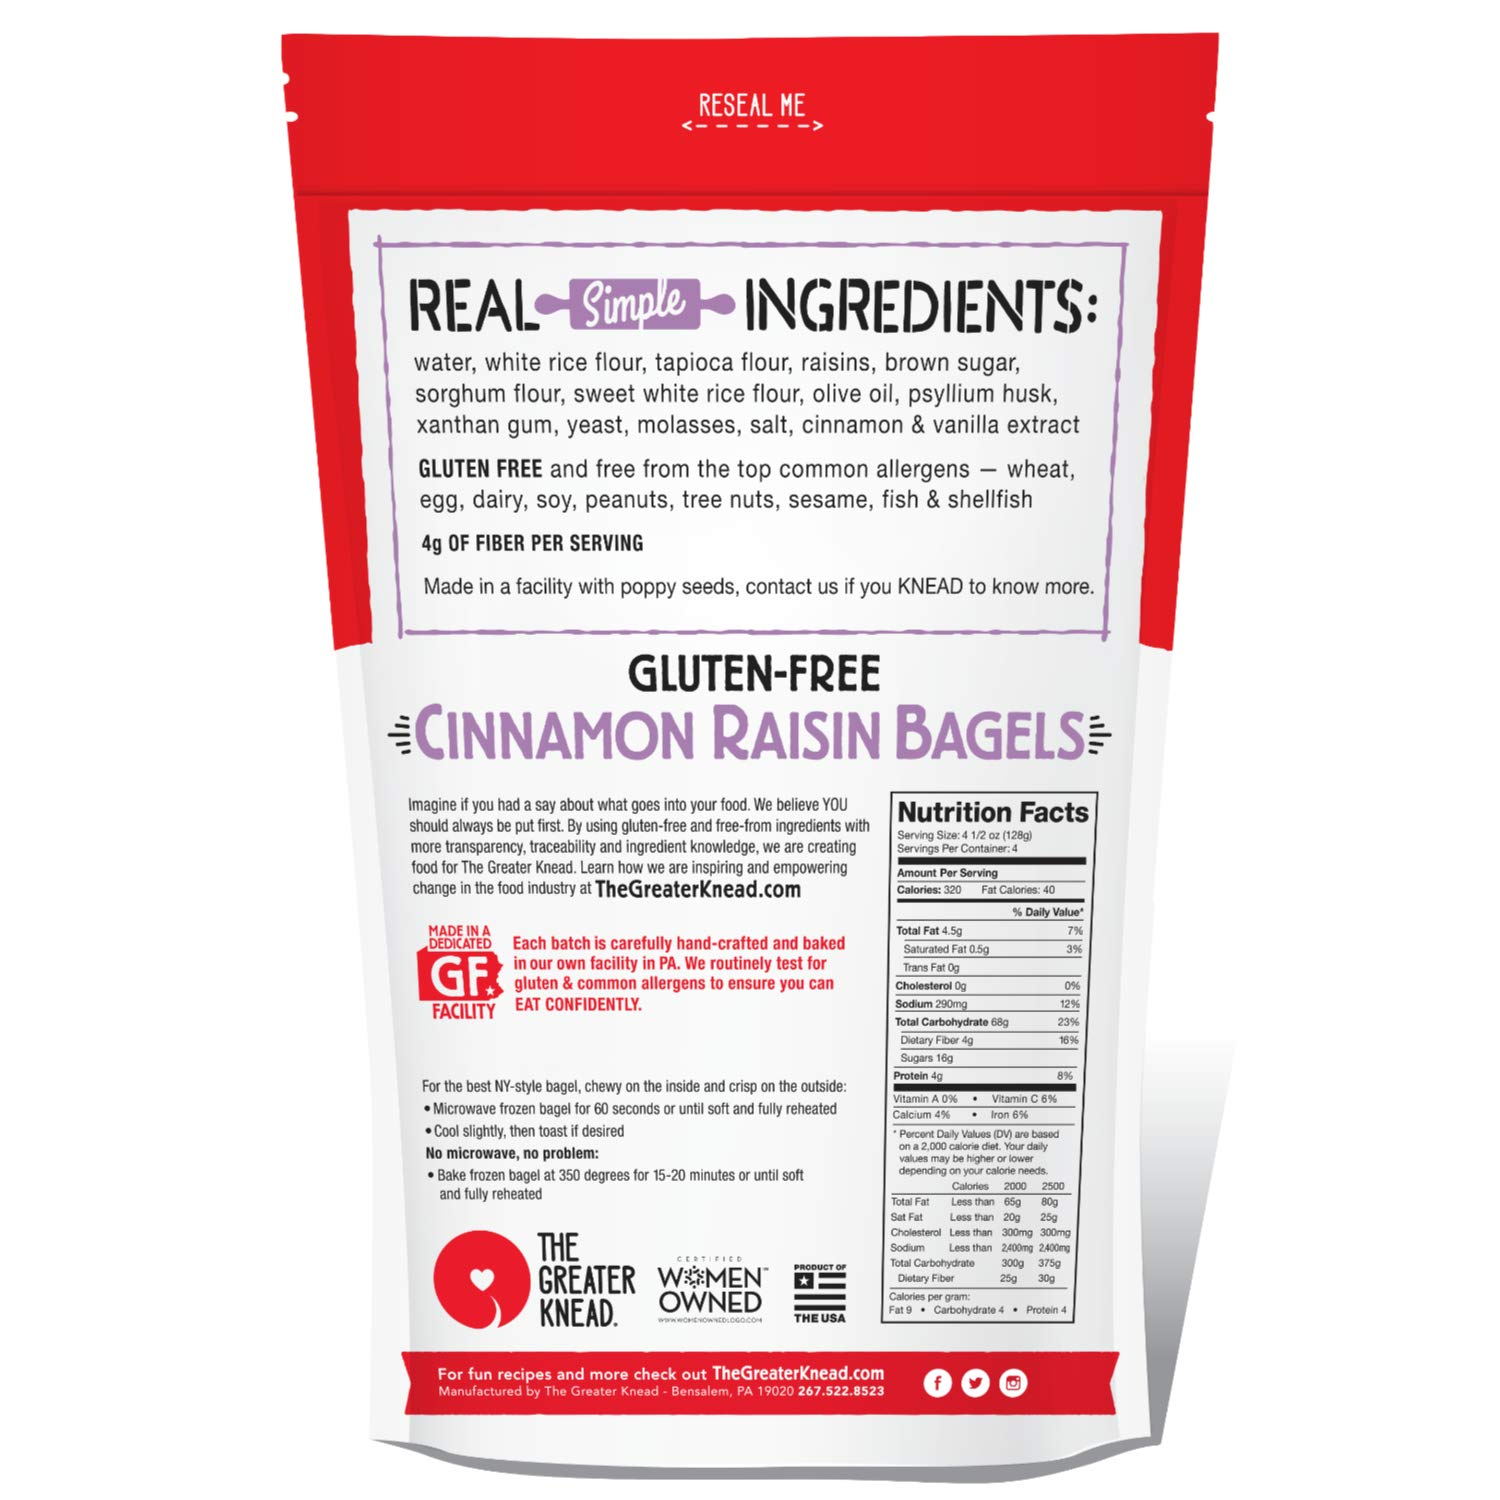 Greater Knead Gluten Free Bagel - Cinnamon Raisin - Vegan, non-GMO, Free of Wheat, Nuts, Soy, Peanuts, Tree Nuts (12 bagels) by The Greater Knead (Image #3)